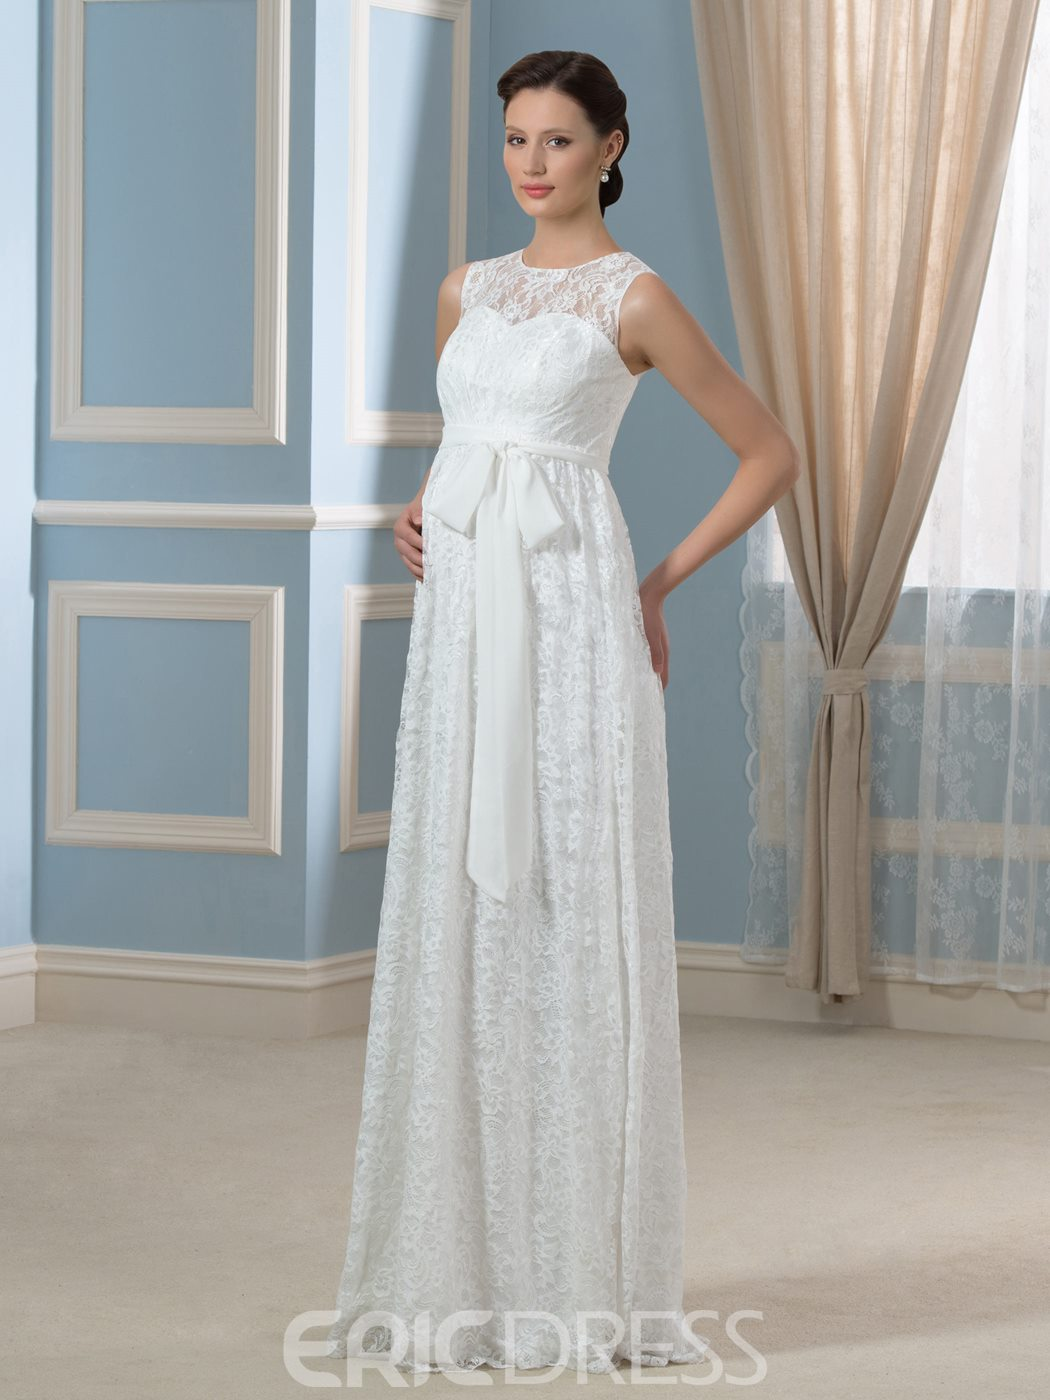 Ericdress Amazing Jewel Sleeves Lace Maternity Wedding Dress